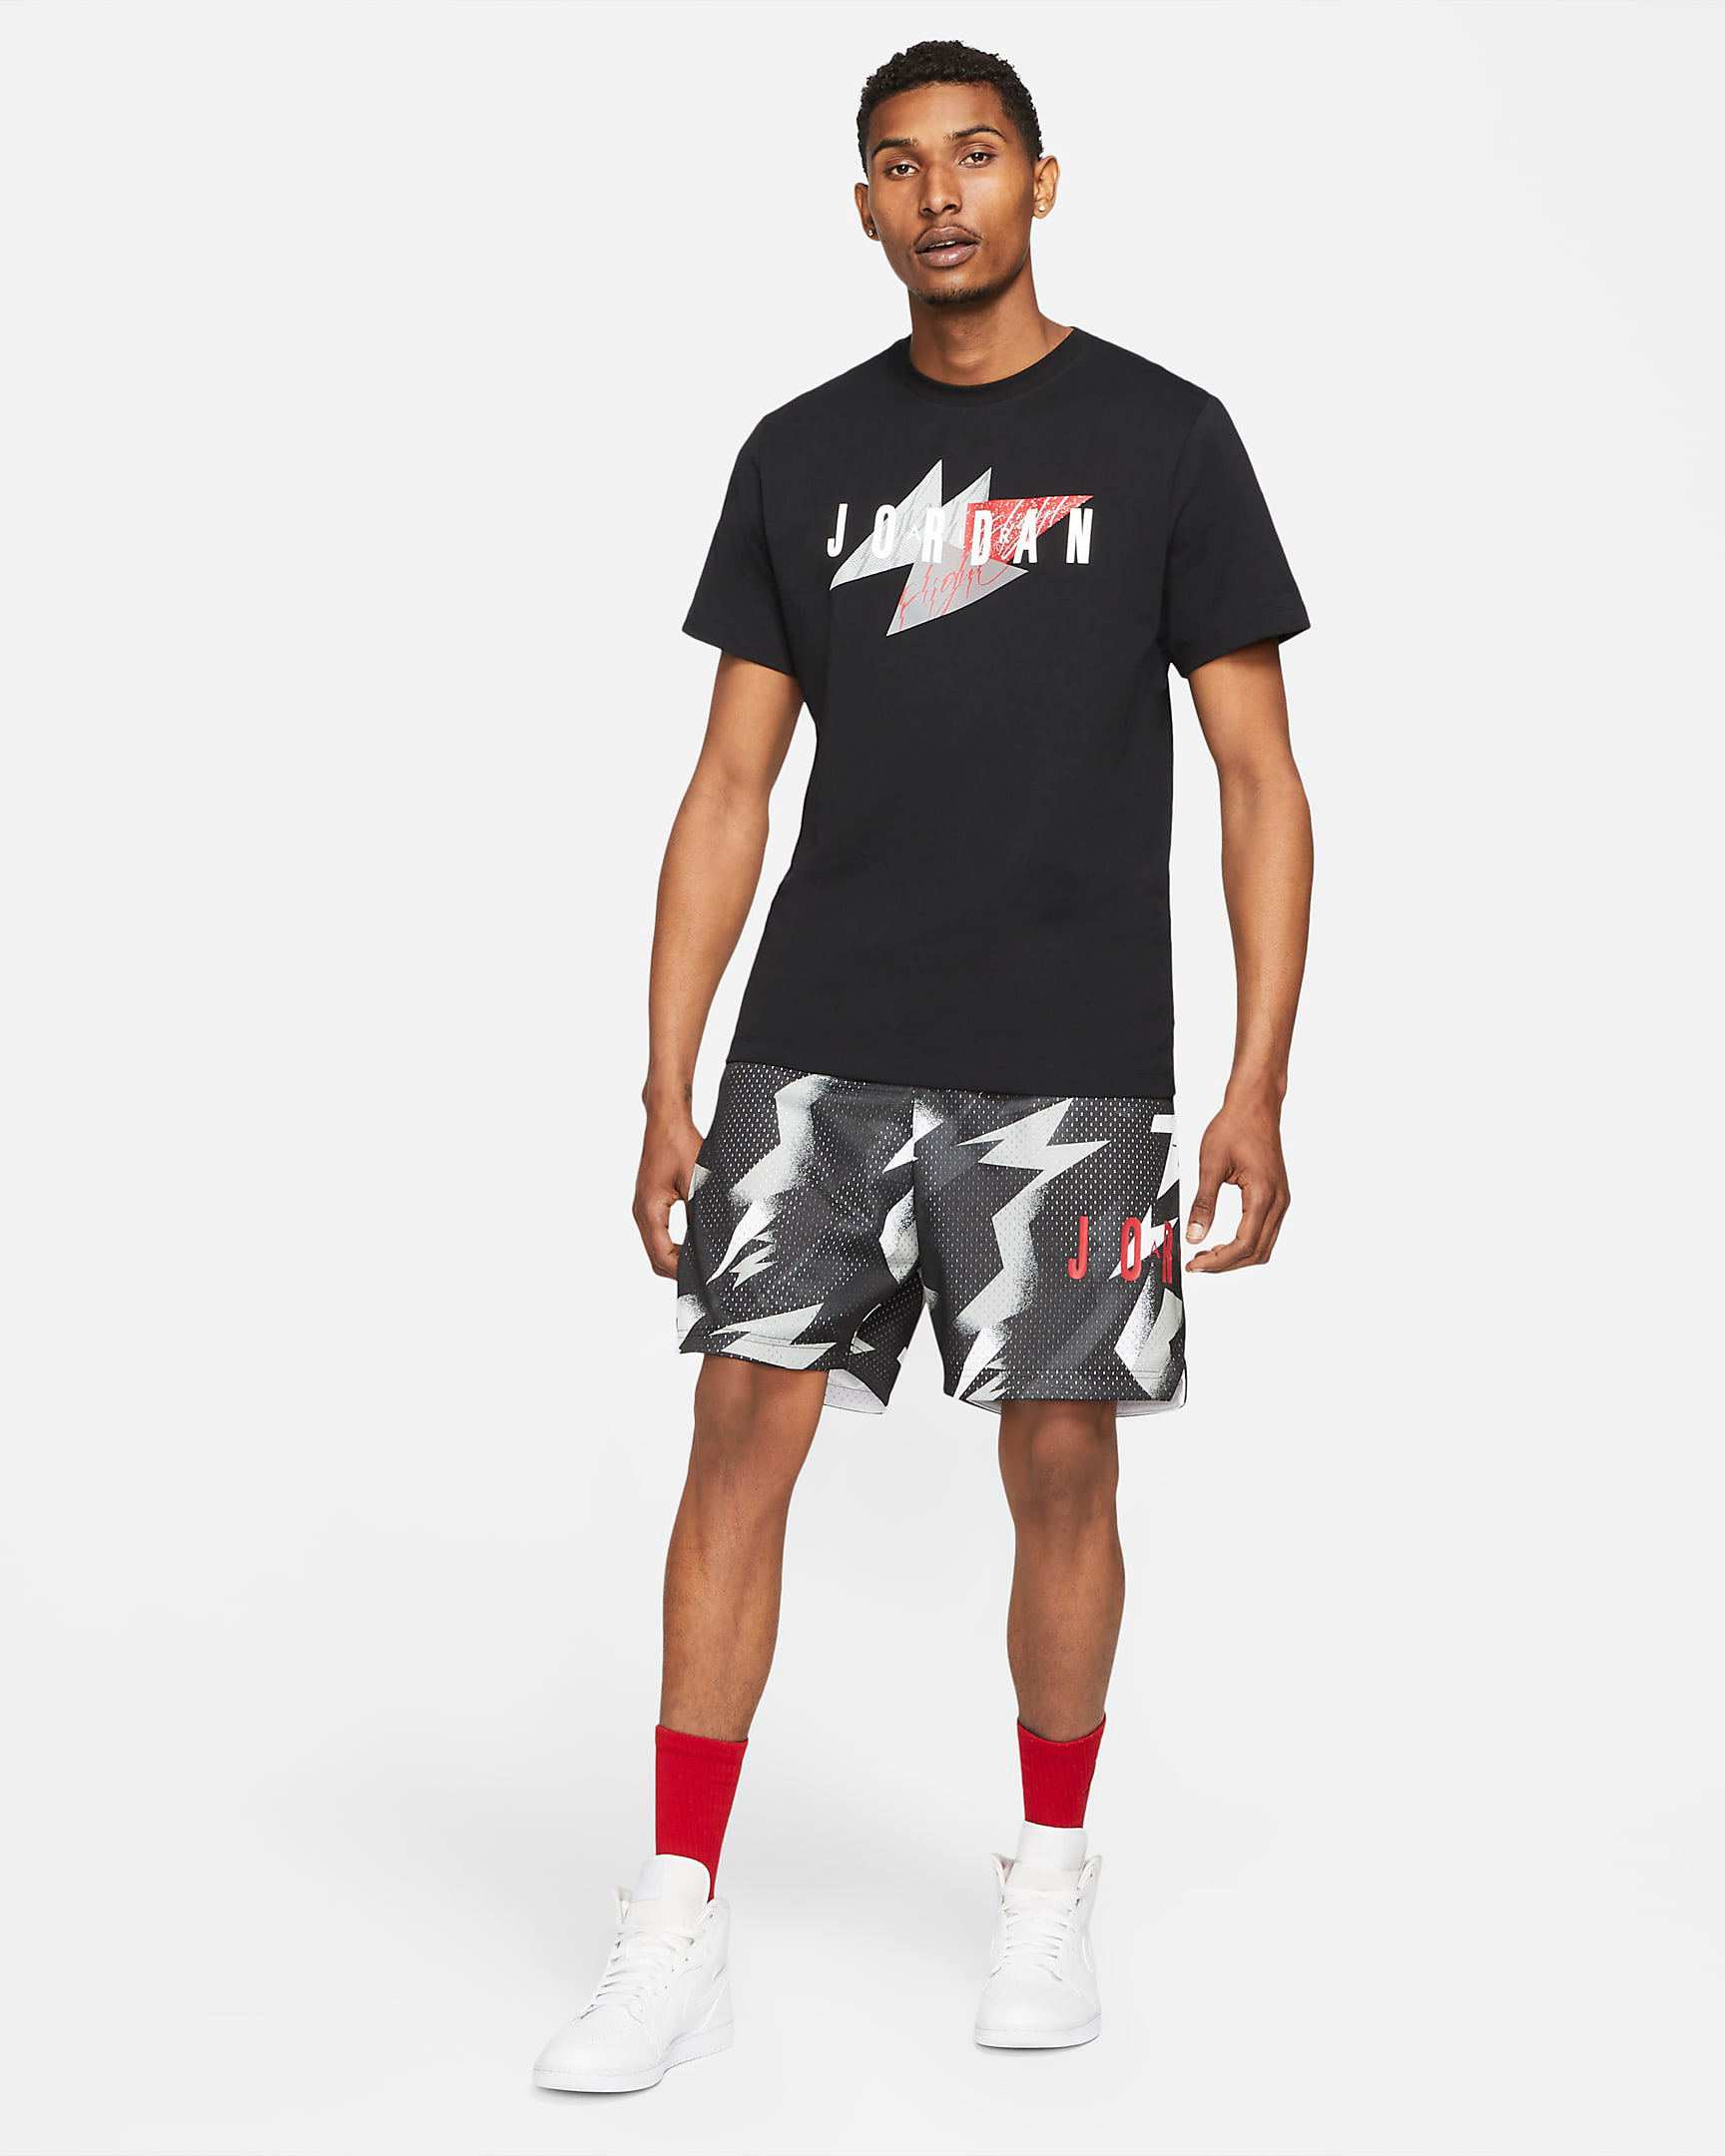 jordan-jumpman-air-outfit-summer-2021-black-white-grey-red